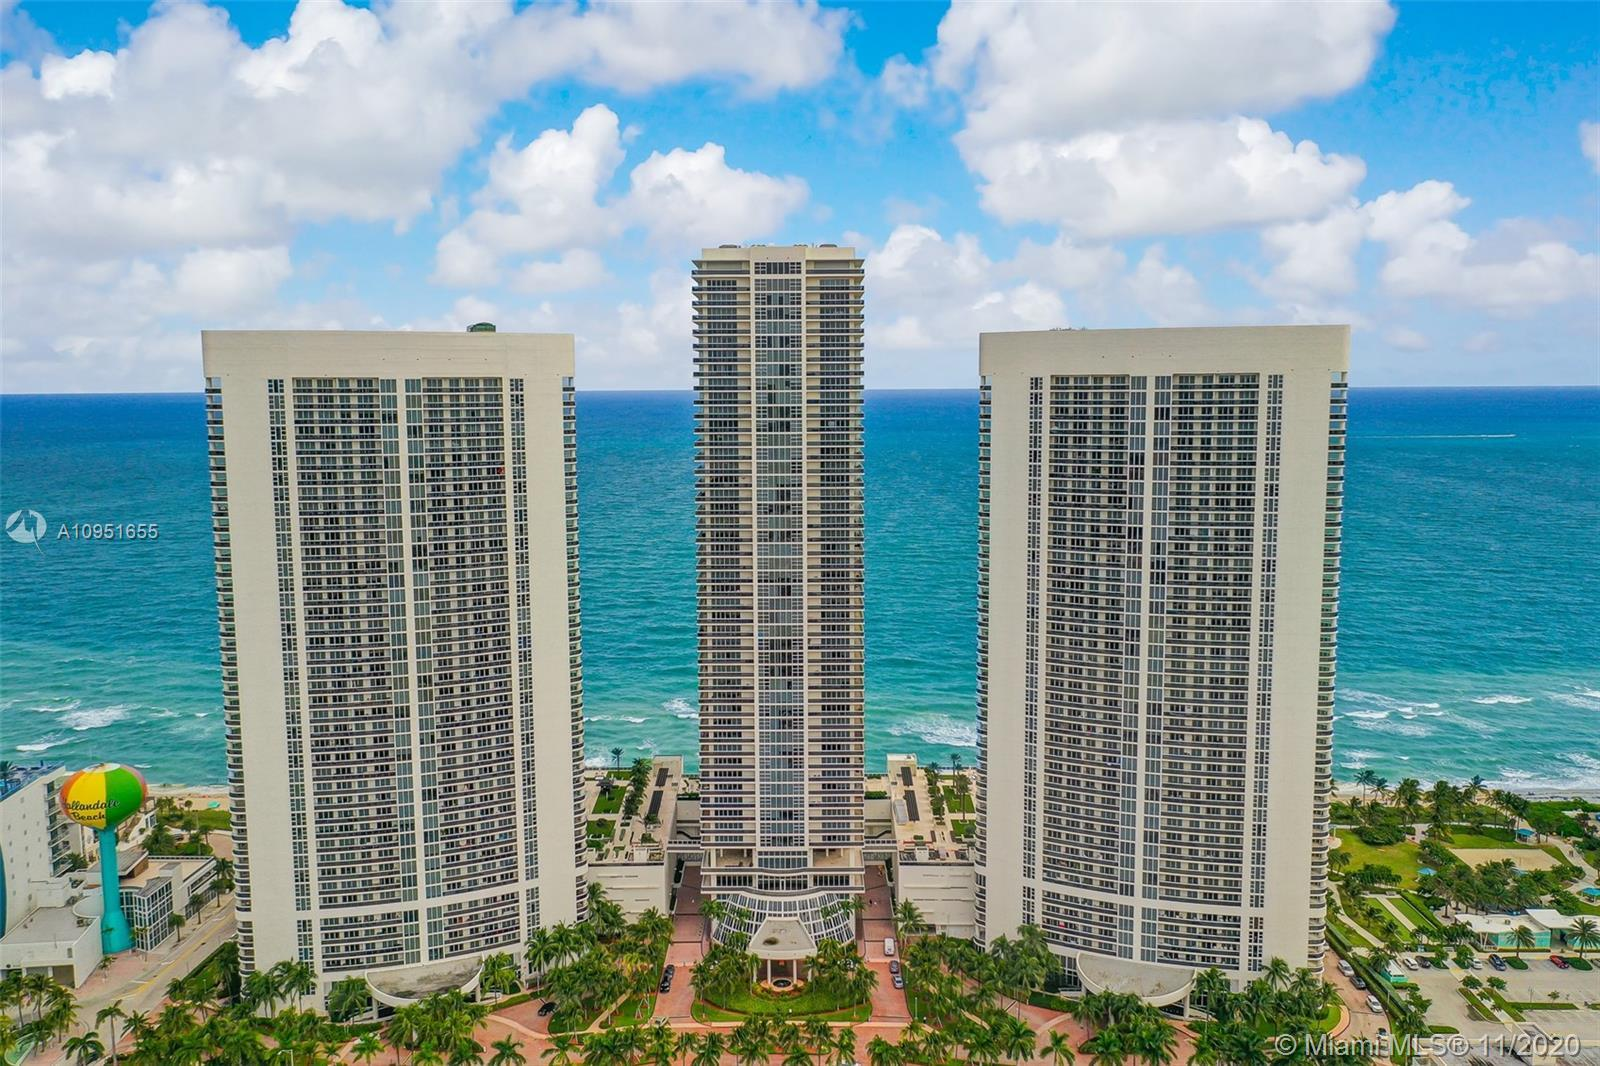 Turnkey oceanfront paradise, City and intracoastal views right from your private balcony. Unit has W